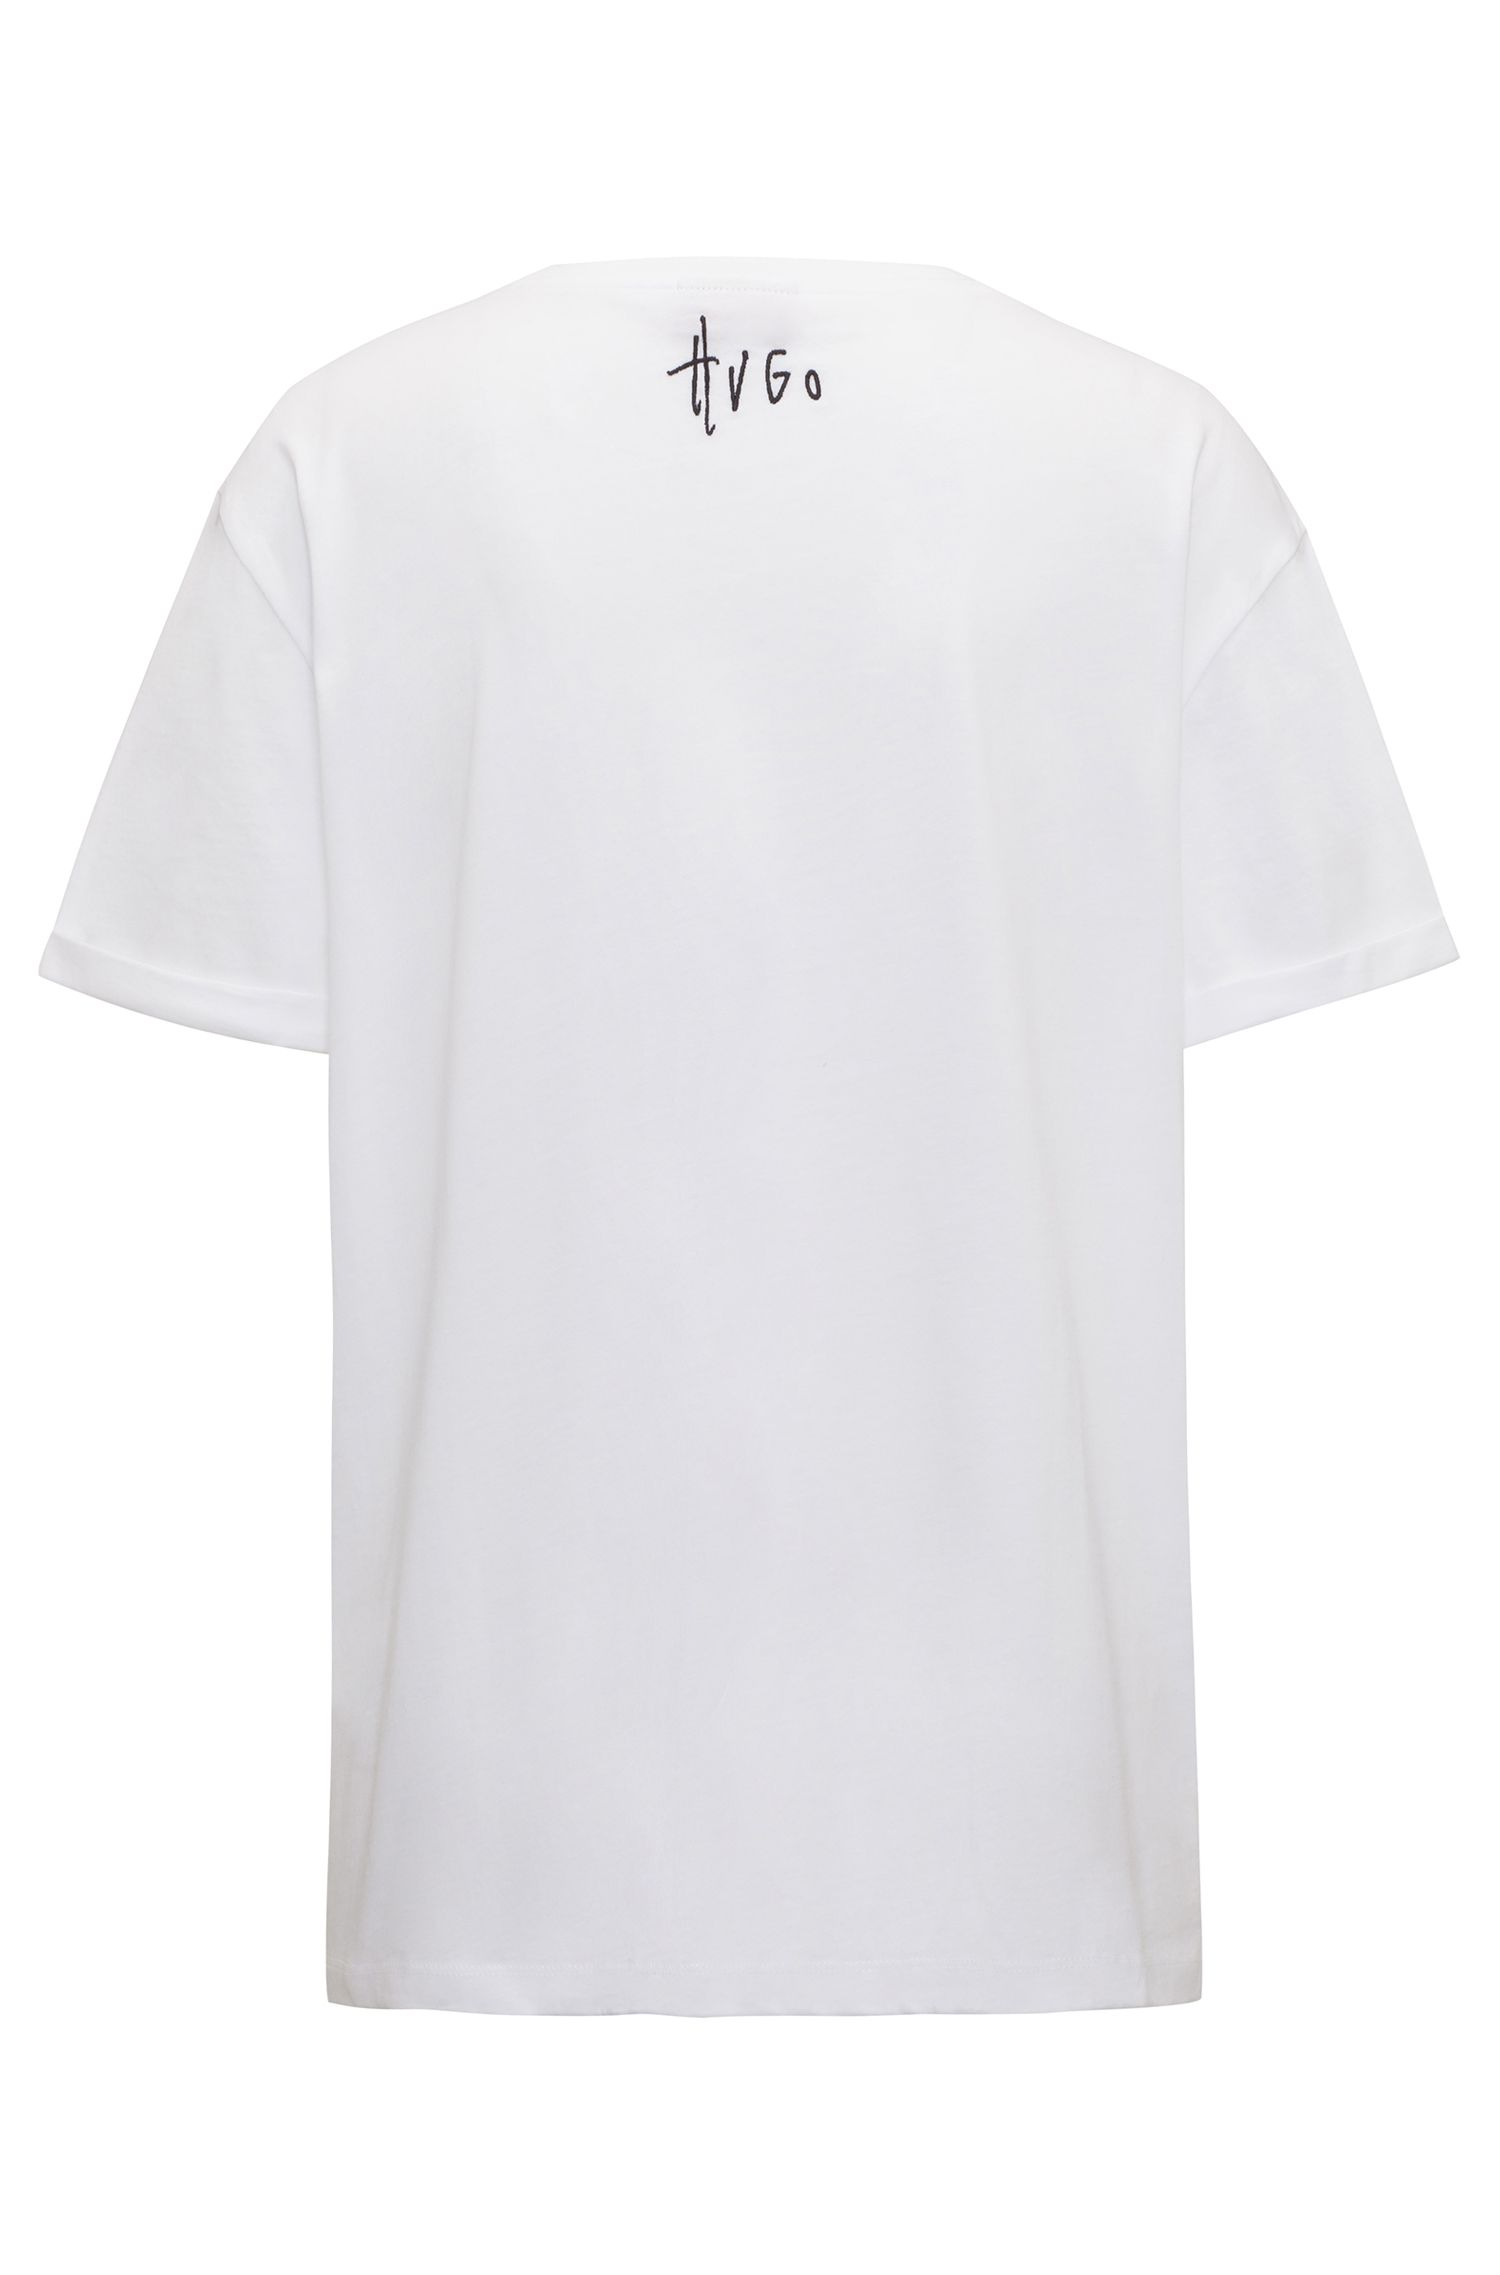 Relaxed-fit cotton jersey T-shirt with stitched slogan